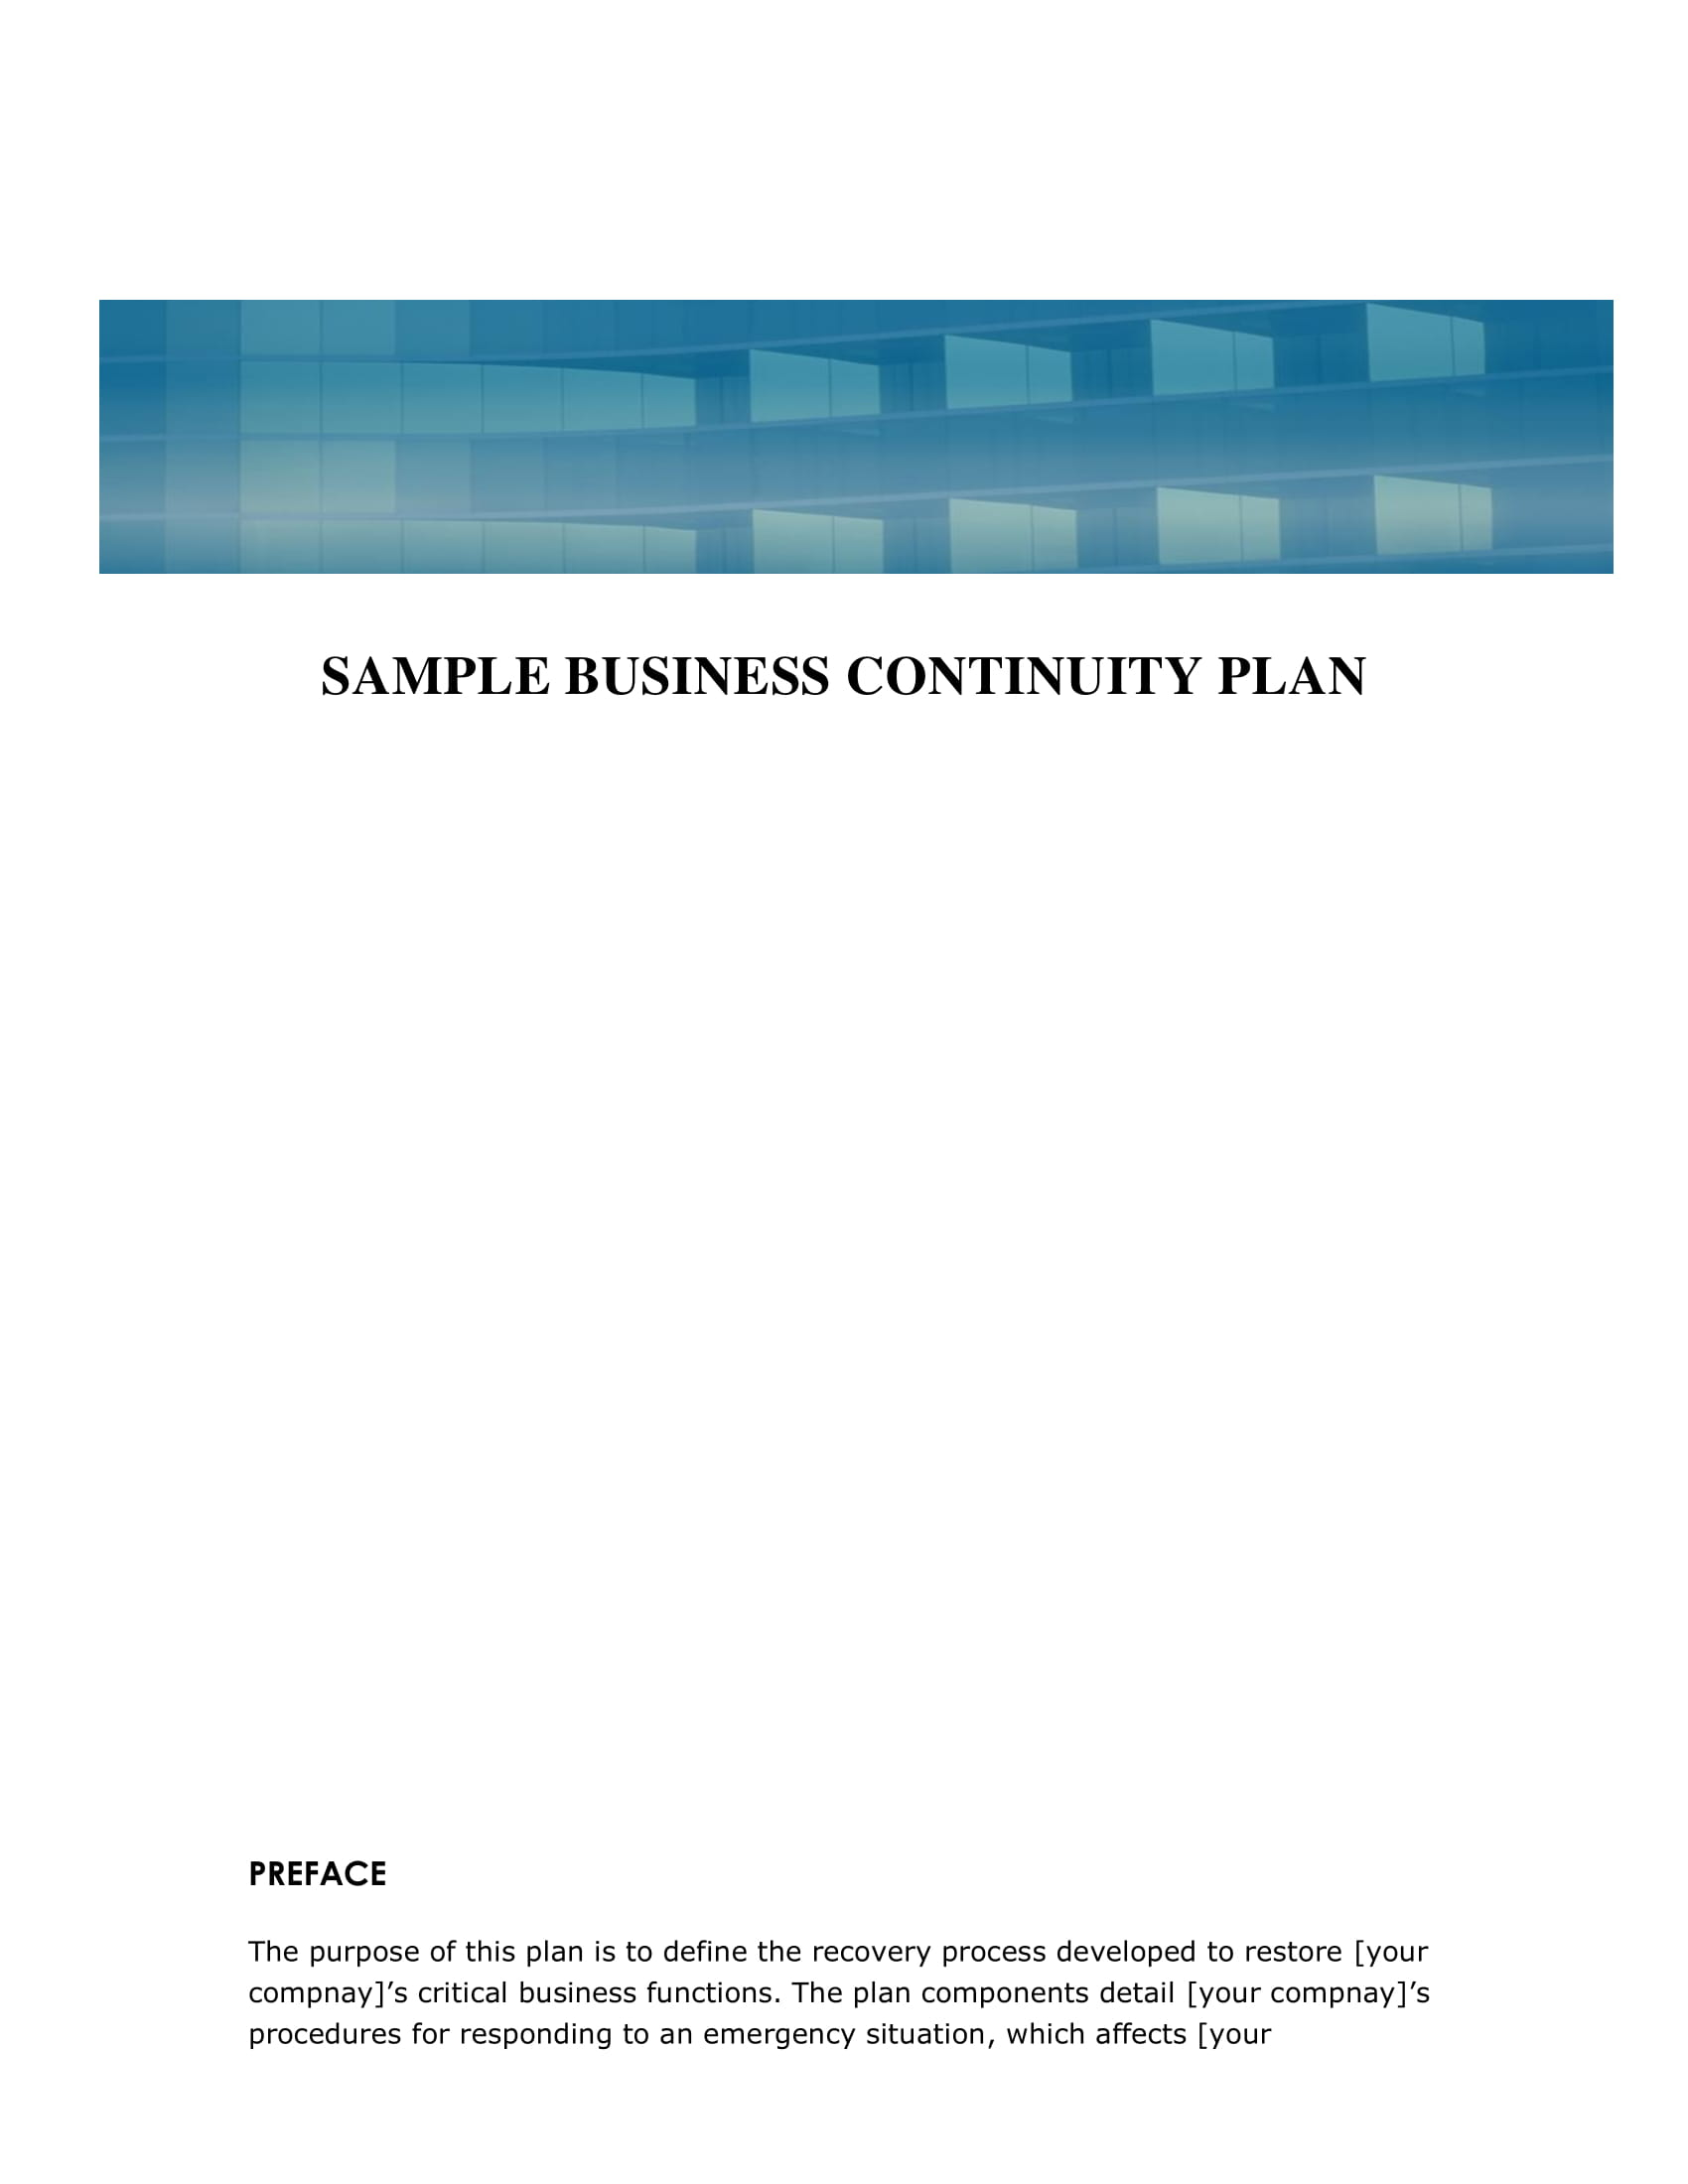 simple business continuity plan example 01